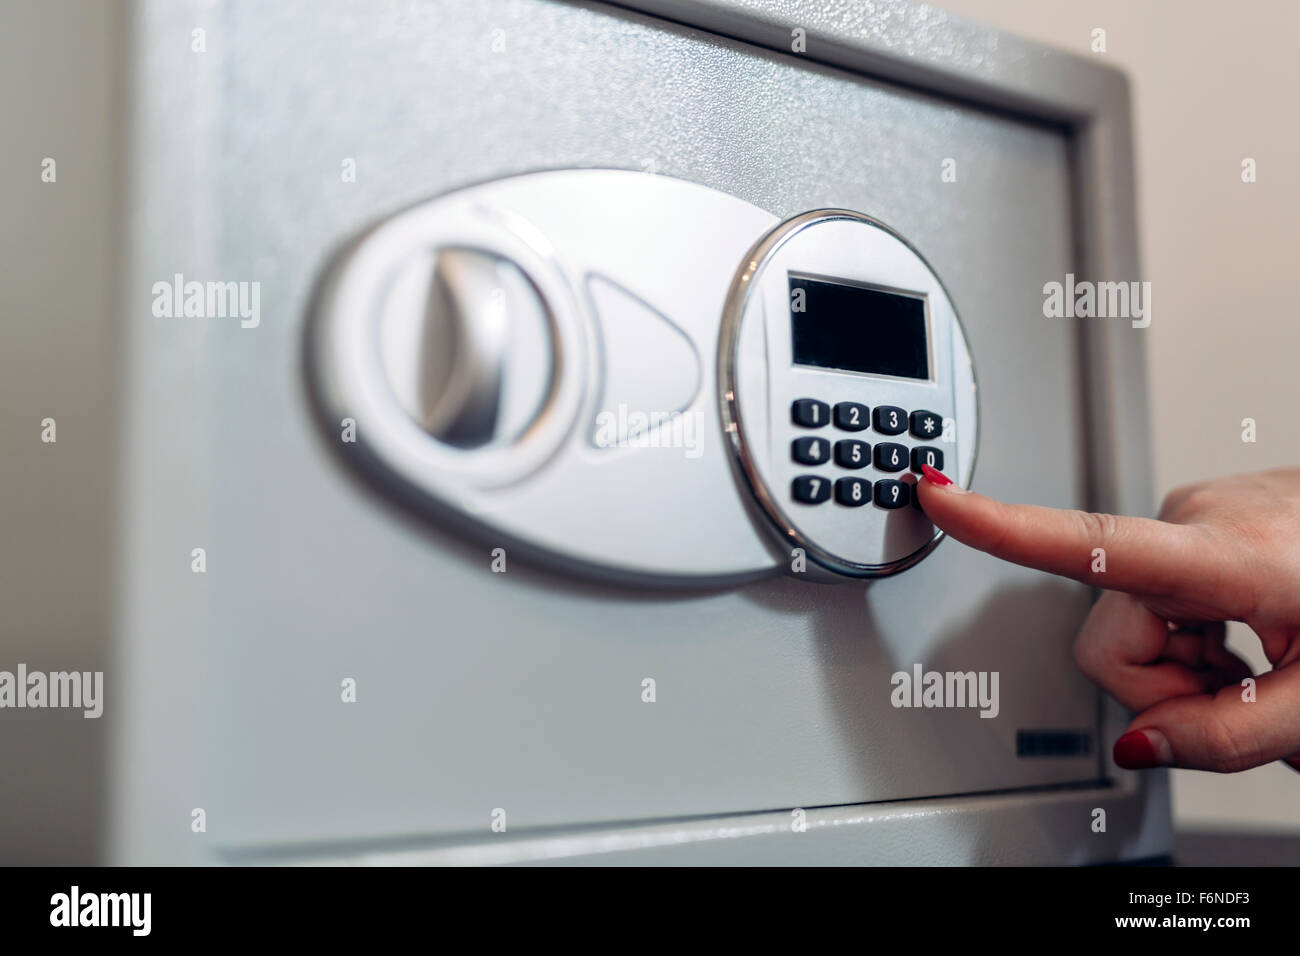 Opening of a safe by typing in security code - Stock Image